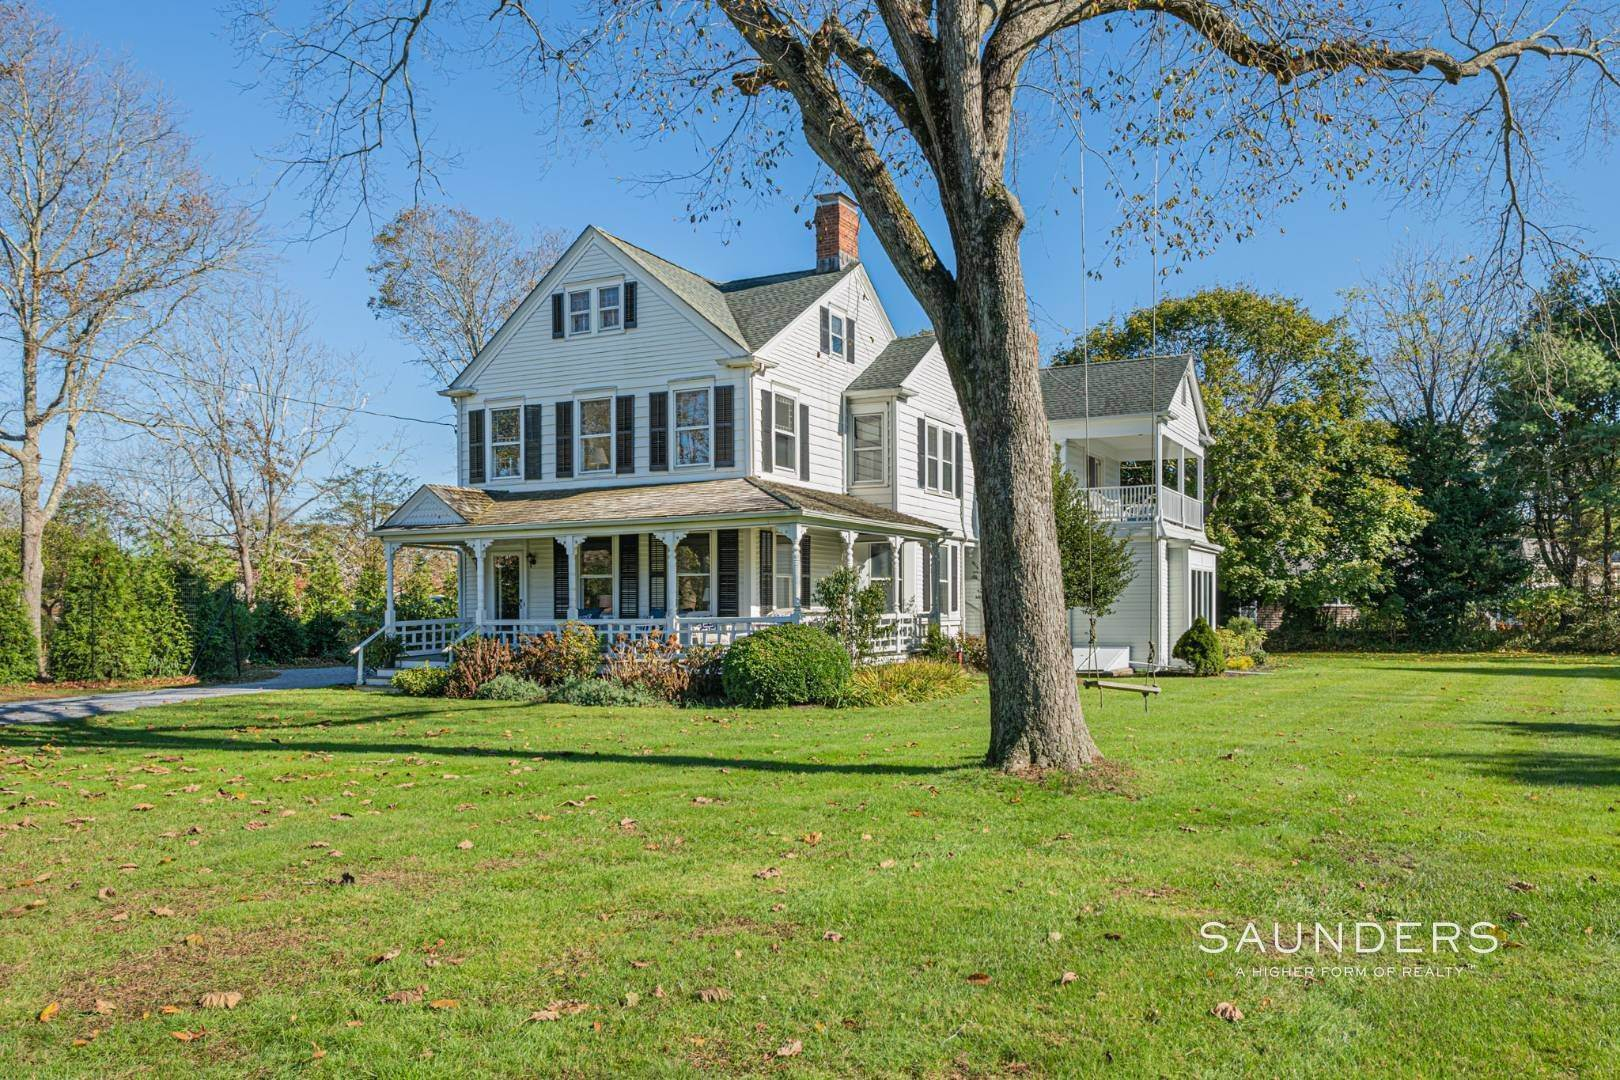 Single Family Homes for Sale at Historic Victorian On Quogue Street 81 Quogue Street, Quogue Village, Southampton Town, NY 11959